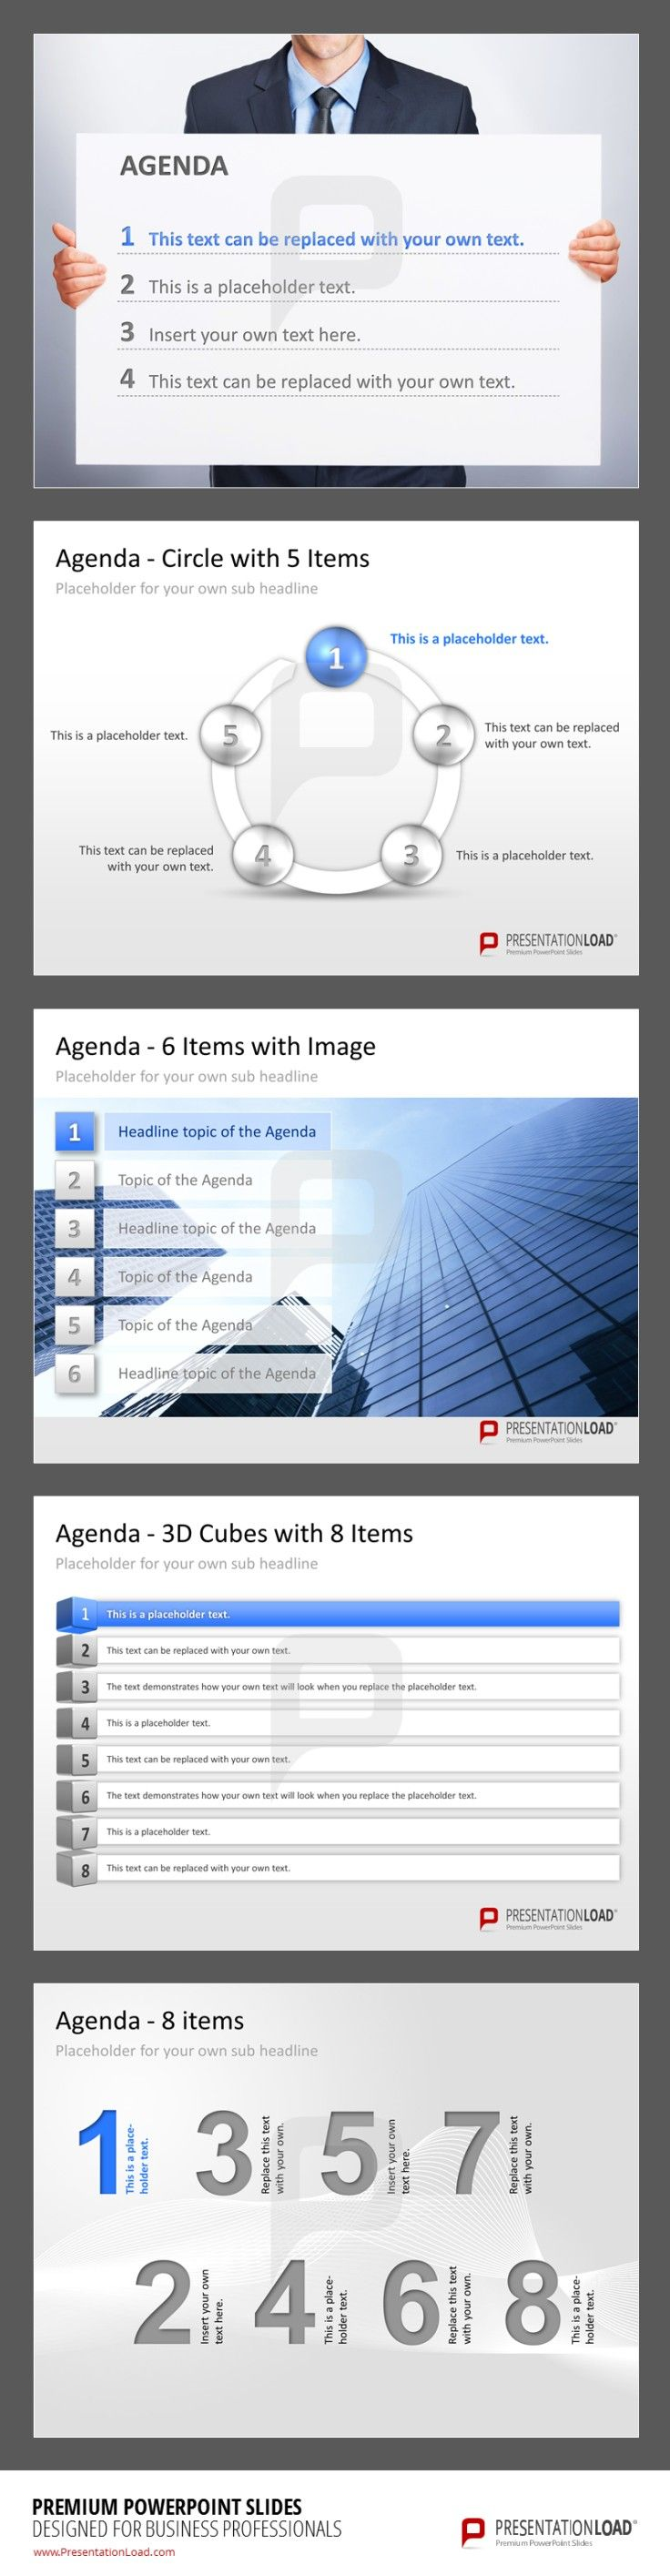 29 best AGENDA // POWERPOINT images on Pinterest | Business ...